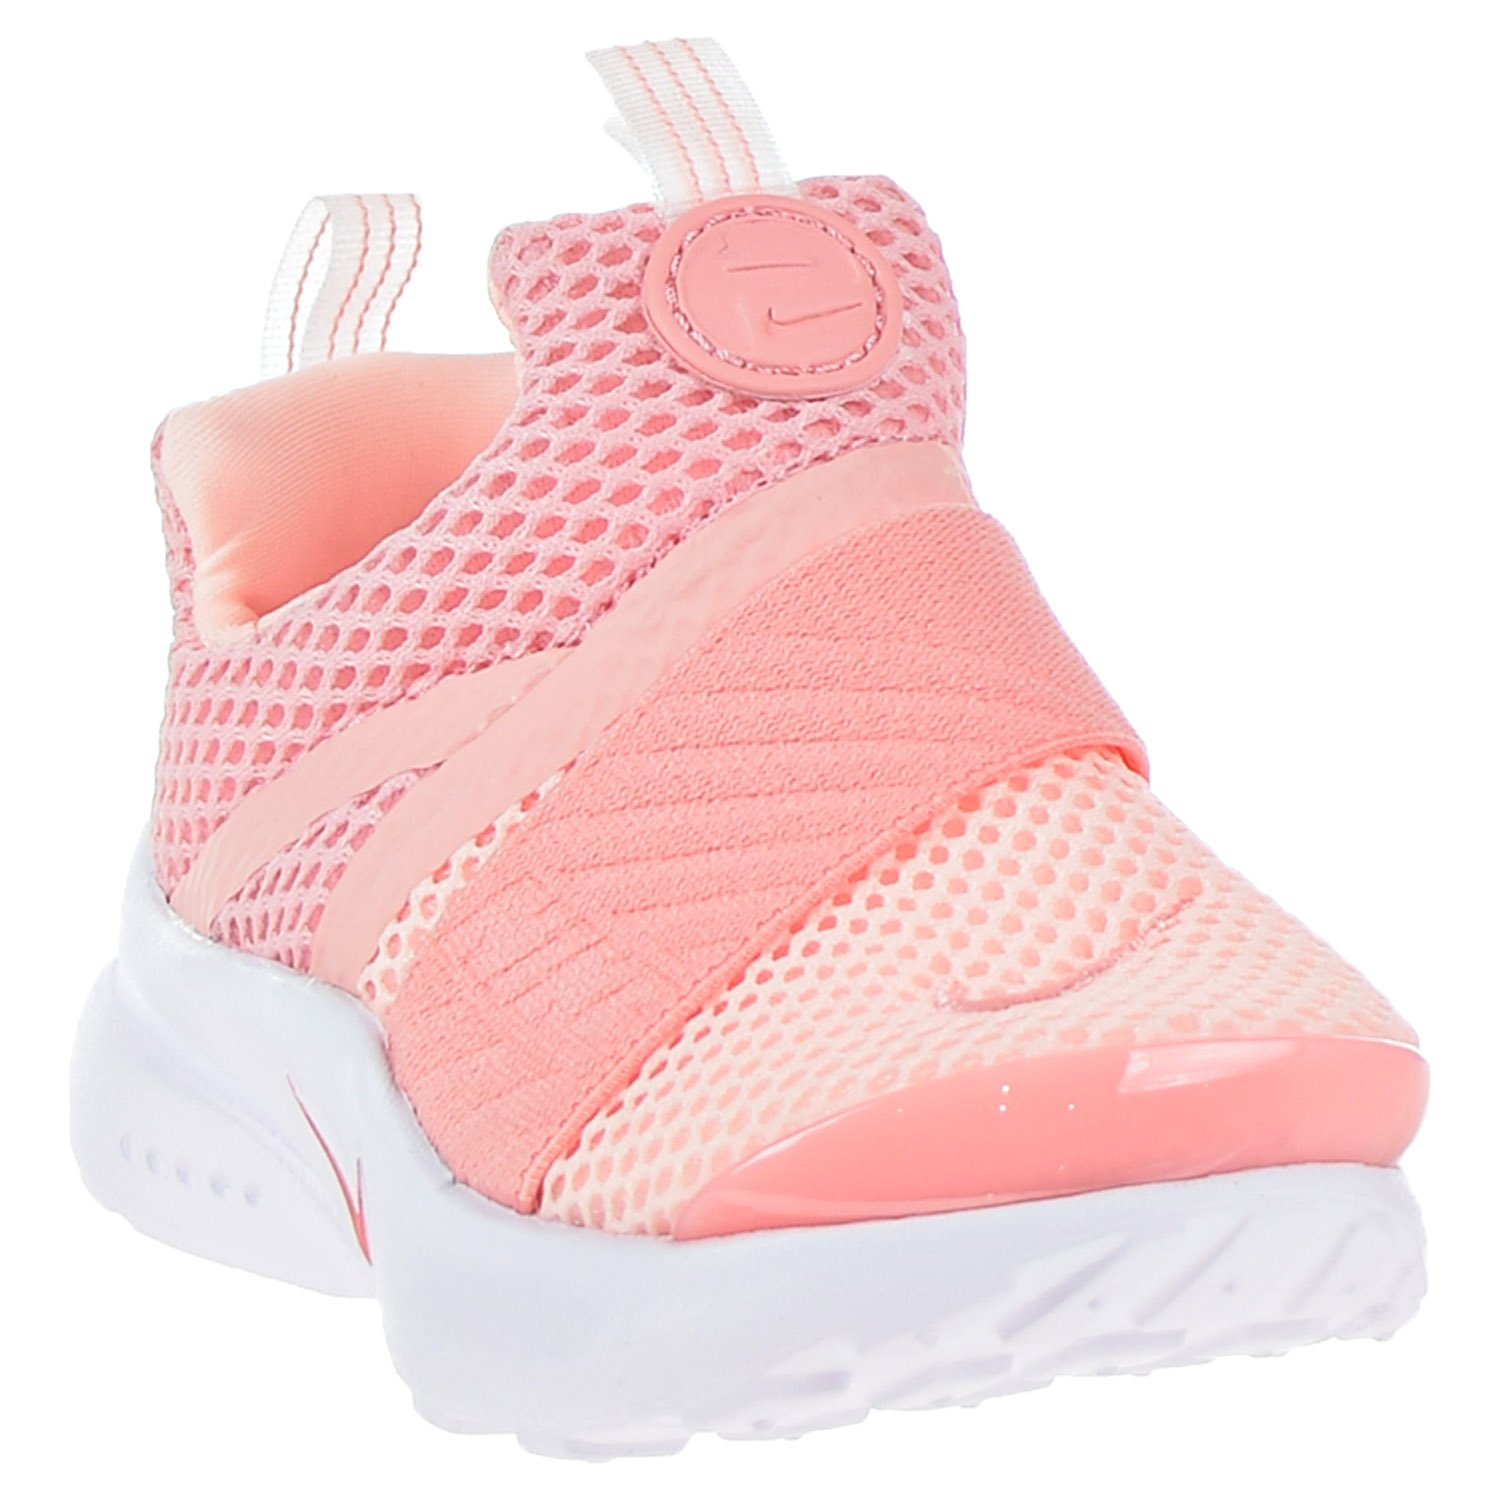 0b5d229a1faf Nike Presto Extreme Toddler s Running Shoes Bleached Coral Bleached Coral  870021-602  Amazon.co.uk  Shoes   Bags